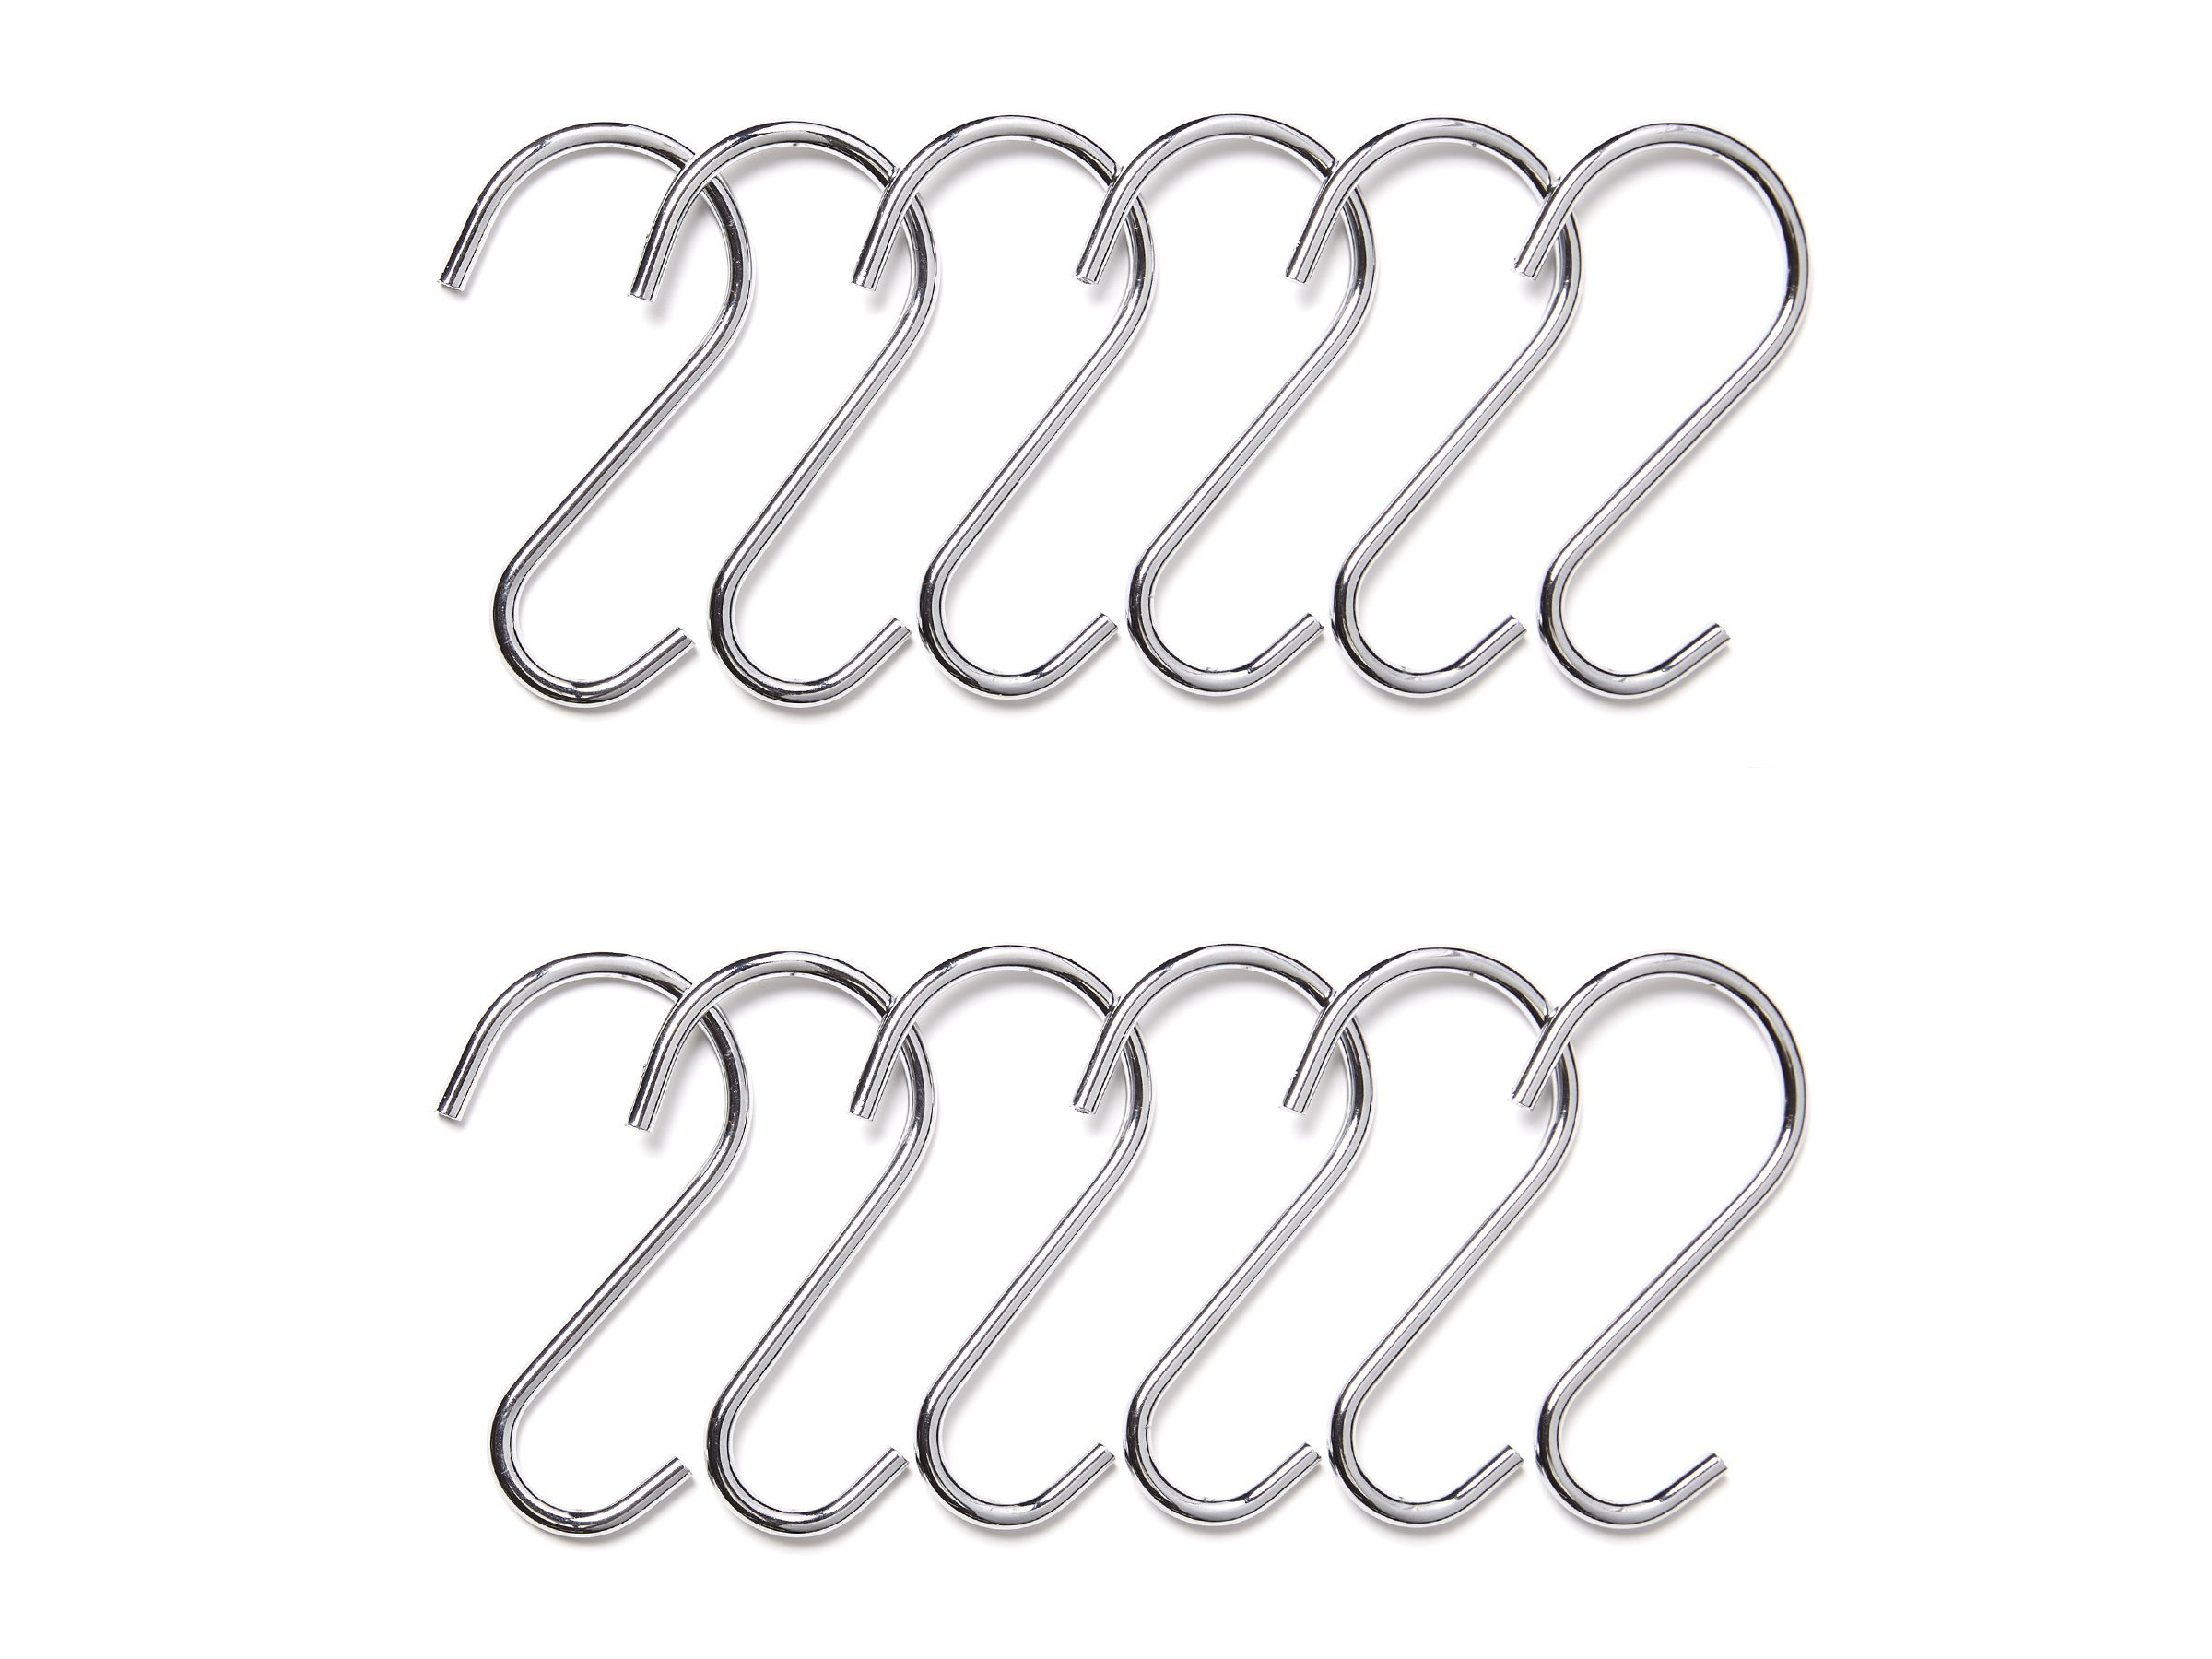 Ball Chain Shower Curtain Rings Google Search Unique Shower